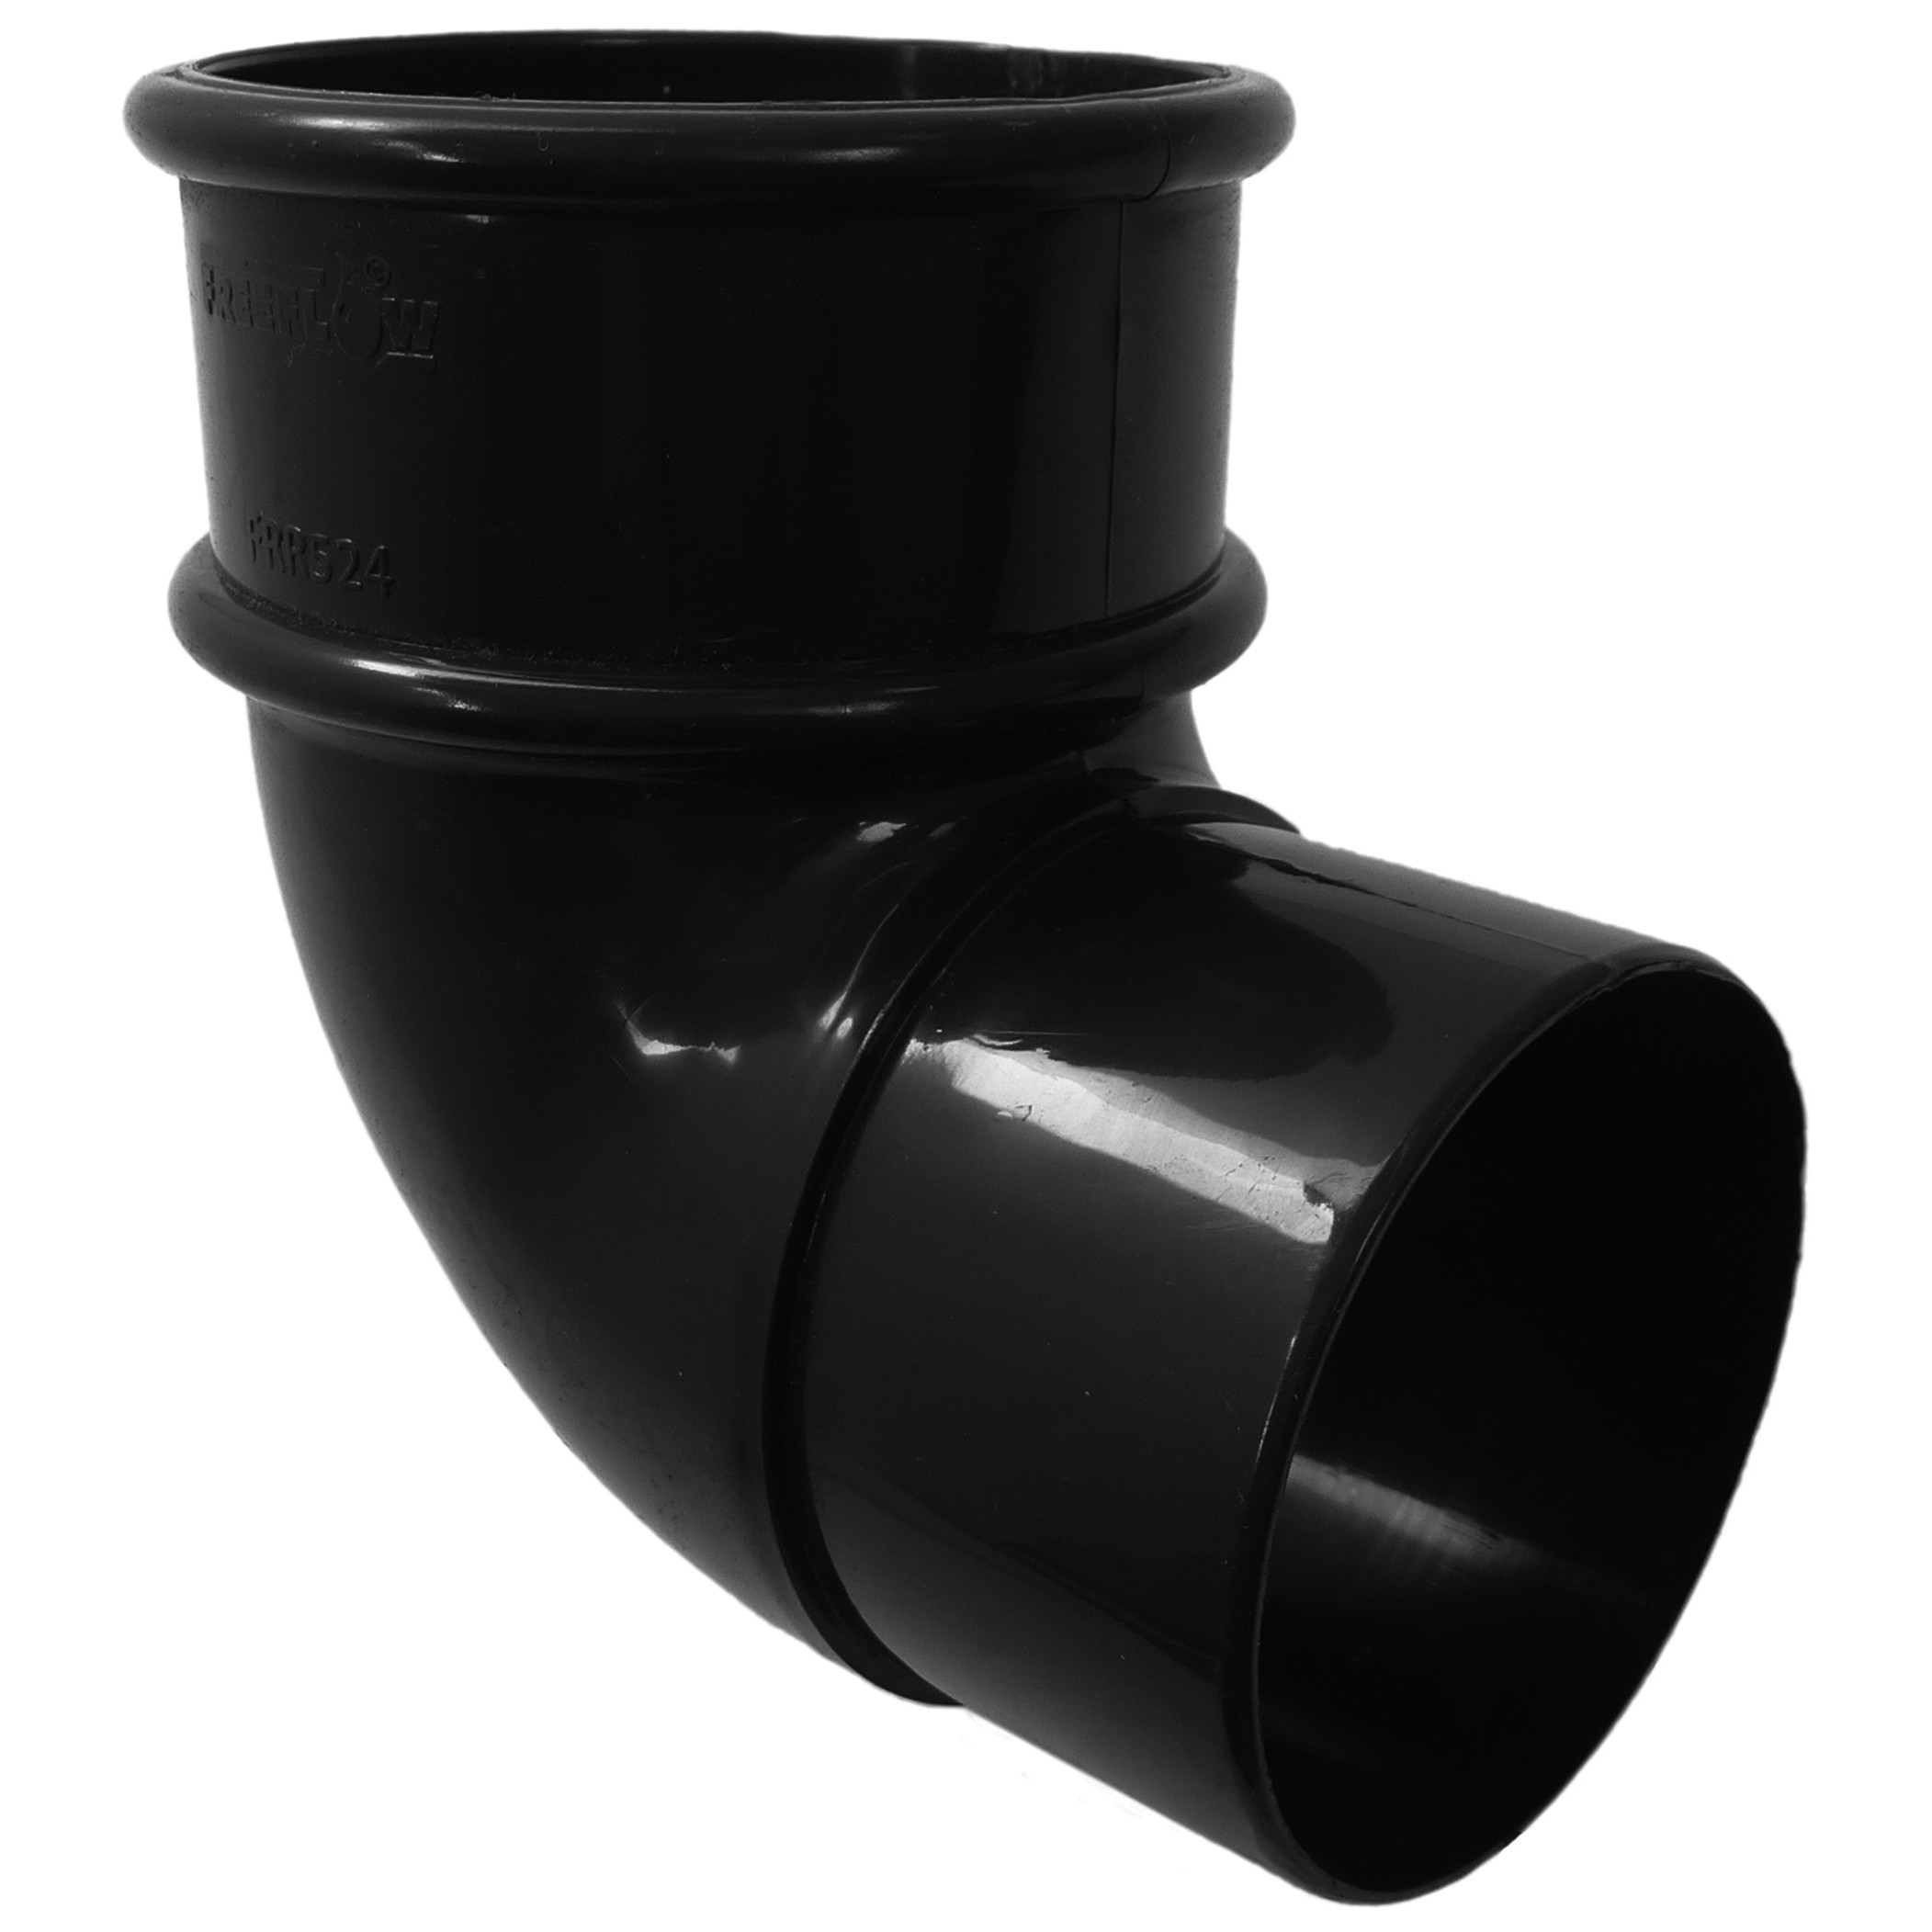 Freeflow 68mm Round Down Pipe 90 Degree Offset Bend - Black